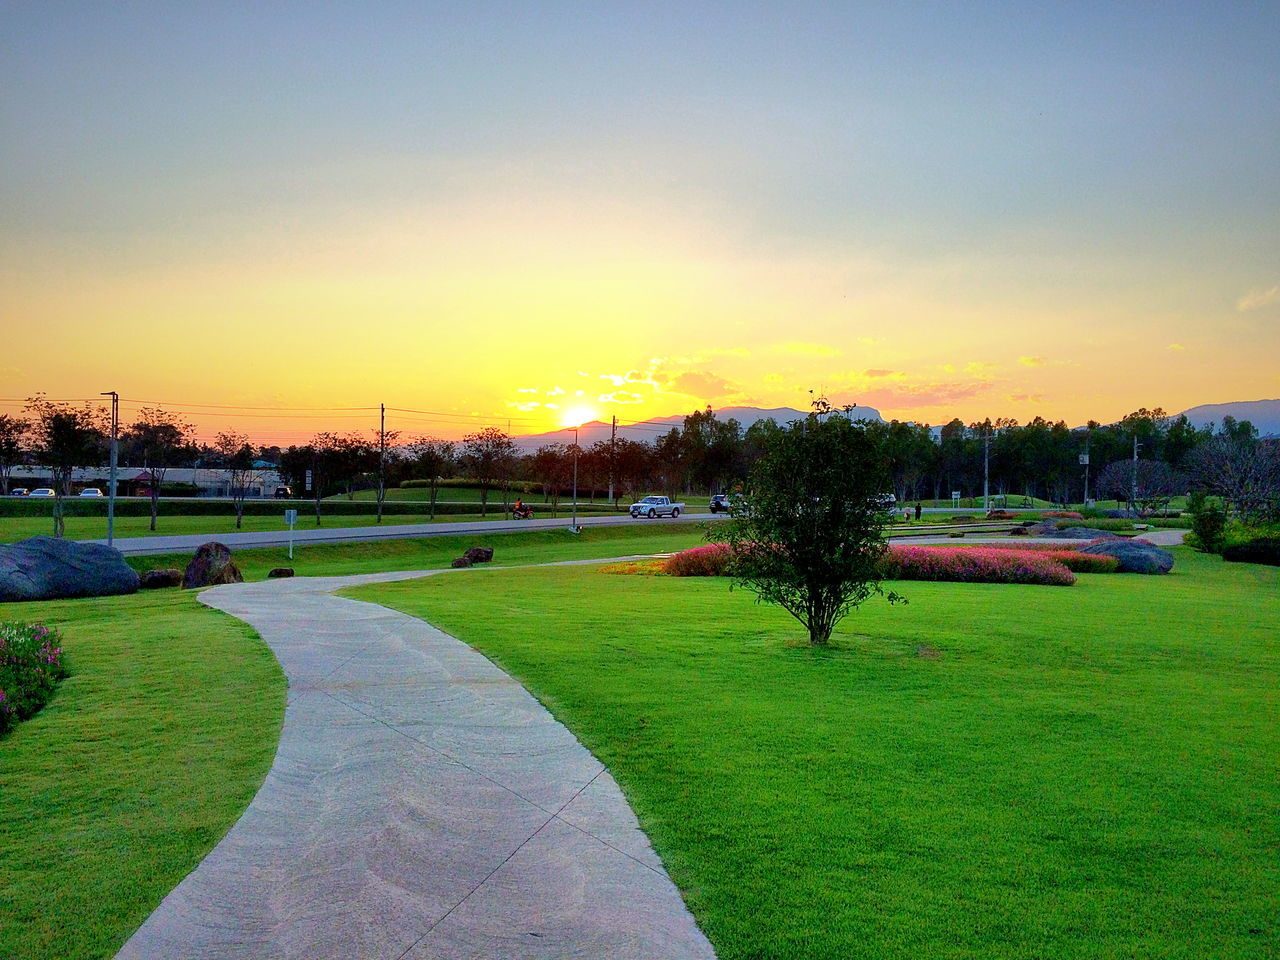 sunset, grass, tree, nature, tranquility, beauty in nature, scenics, sky, outdoors, clear sky, tranquil scene, landscape, growth, no people, golf course, building exterior, day